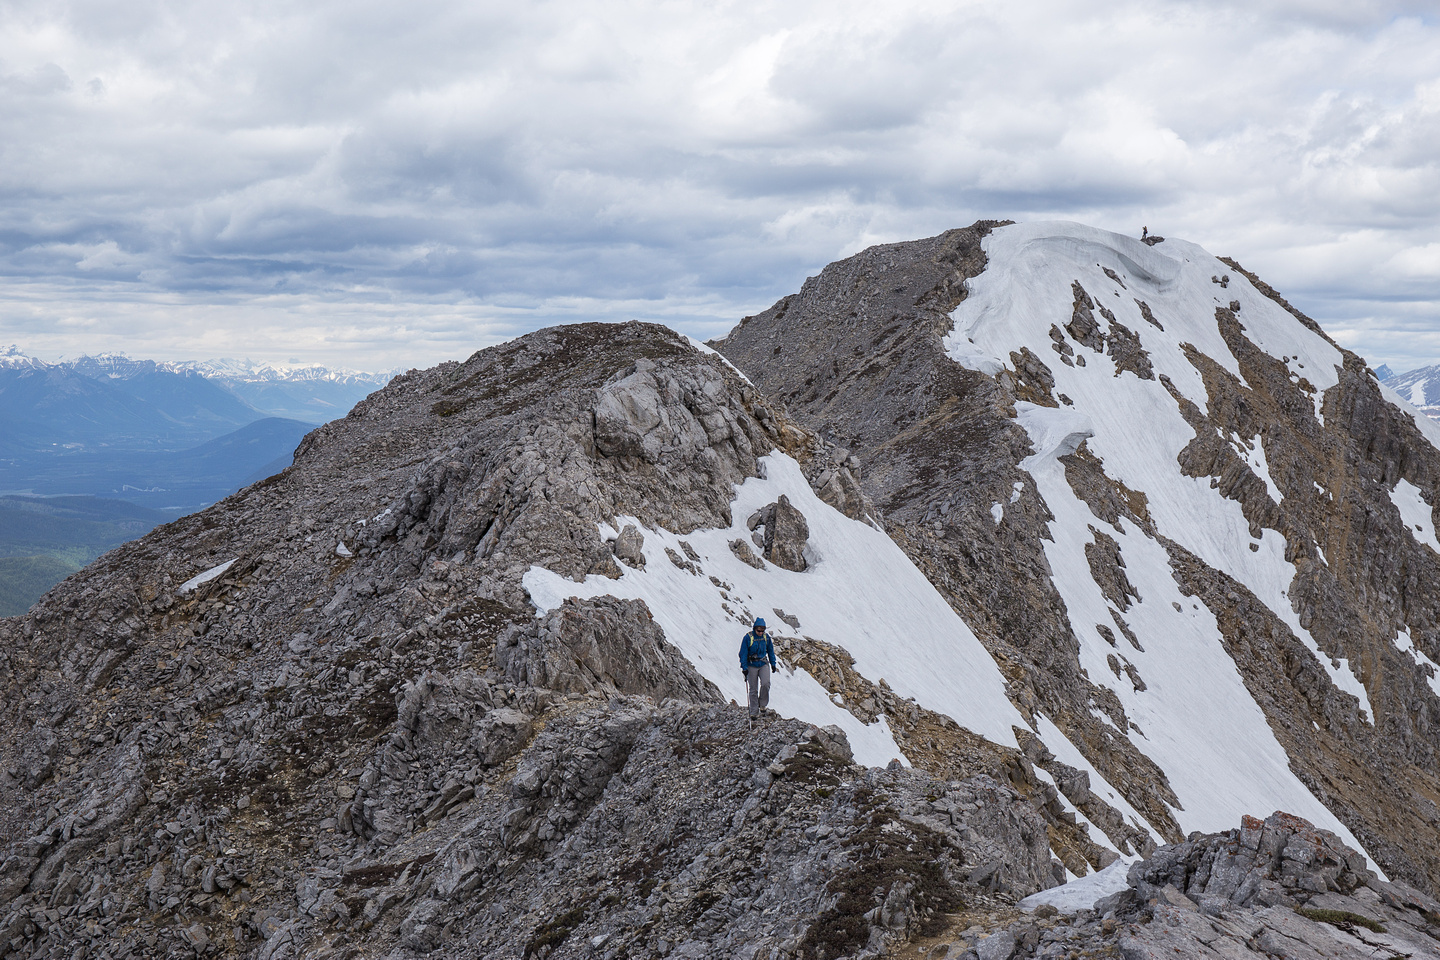 Andrea descends the ridge from the summit.